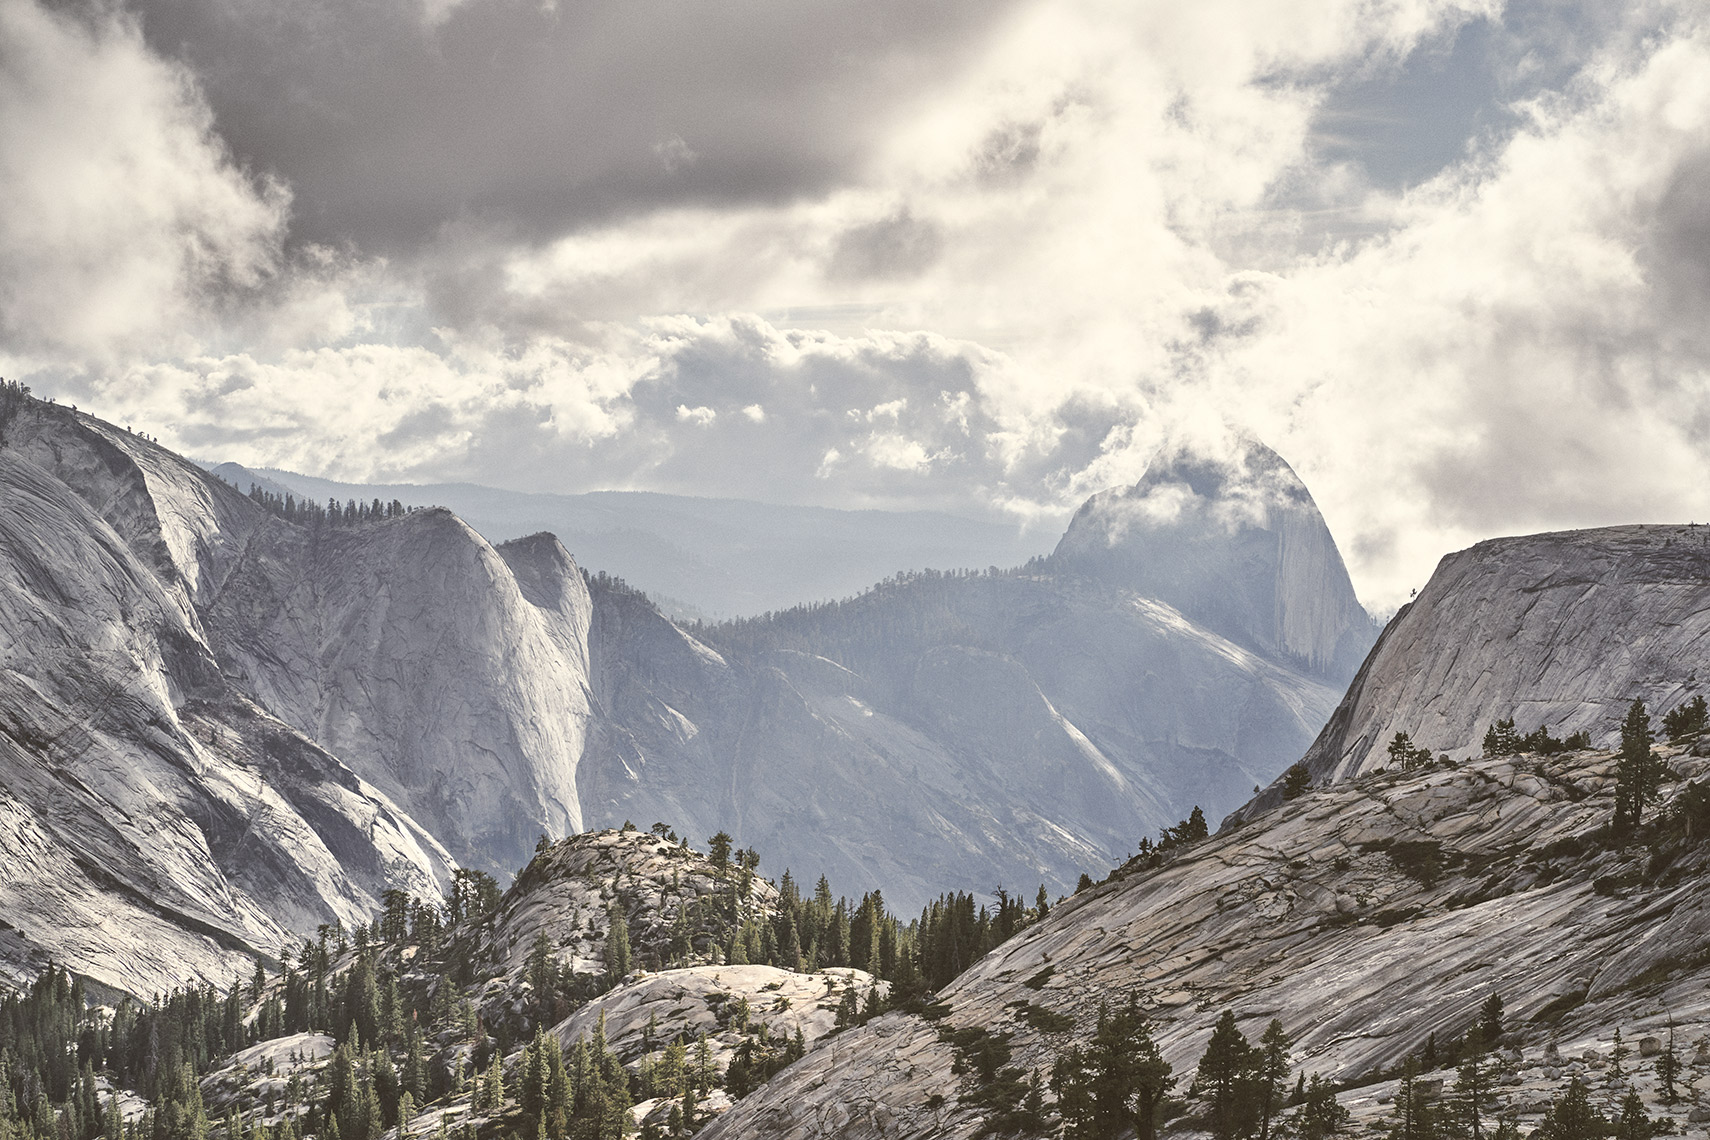 OLMSTED_POINIT_YOSEMITE_BK16074